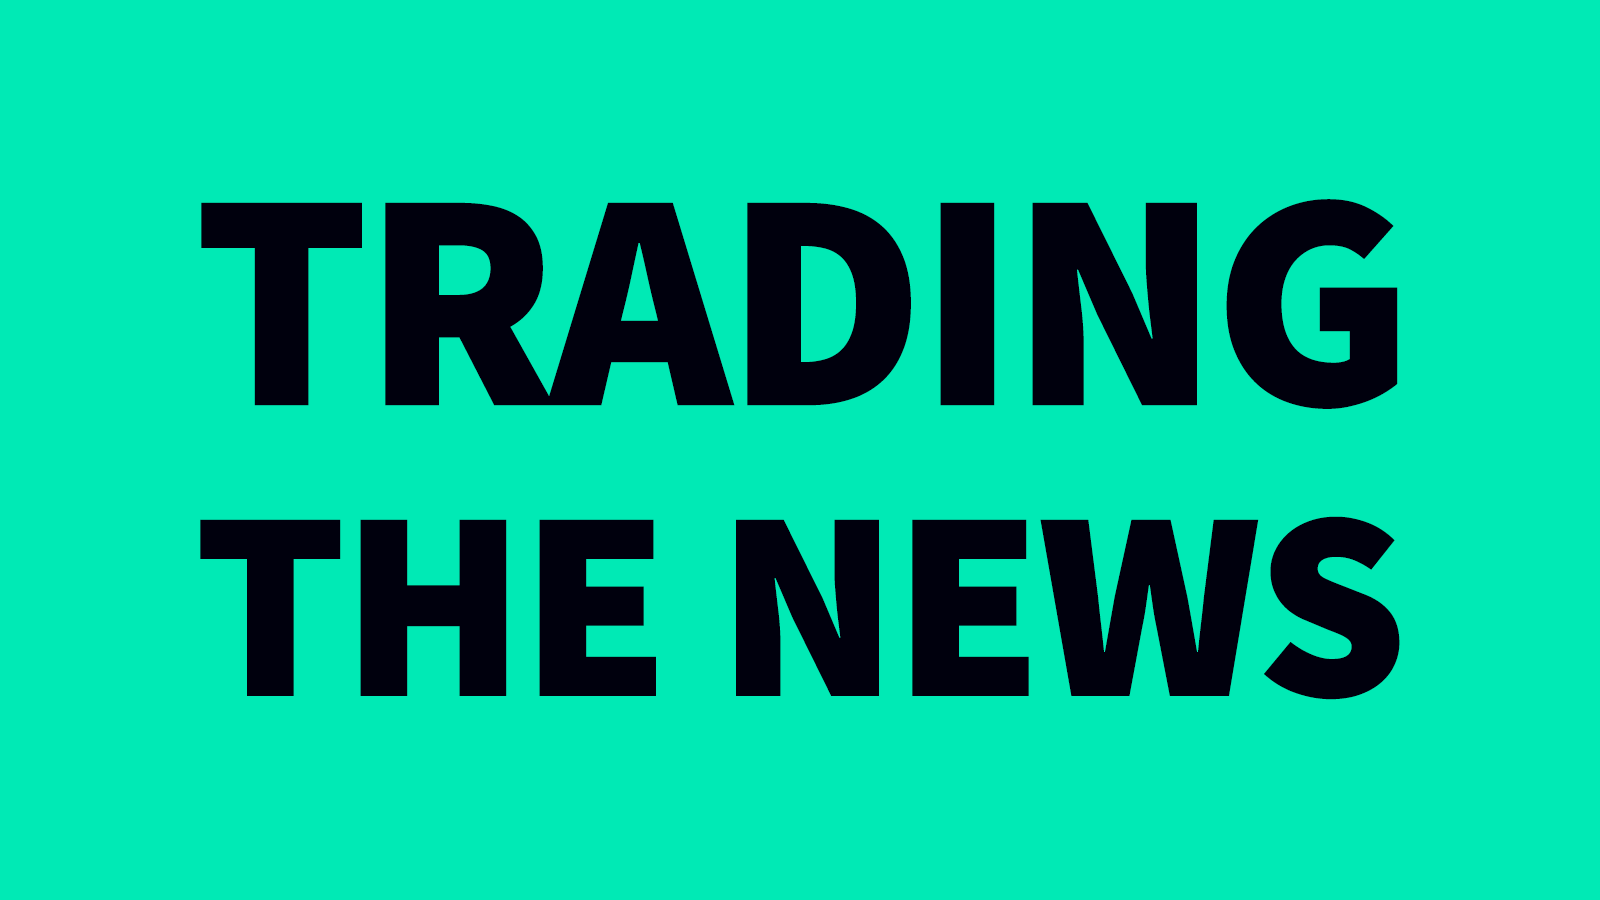 trading with news